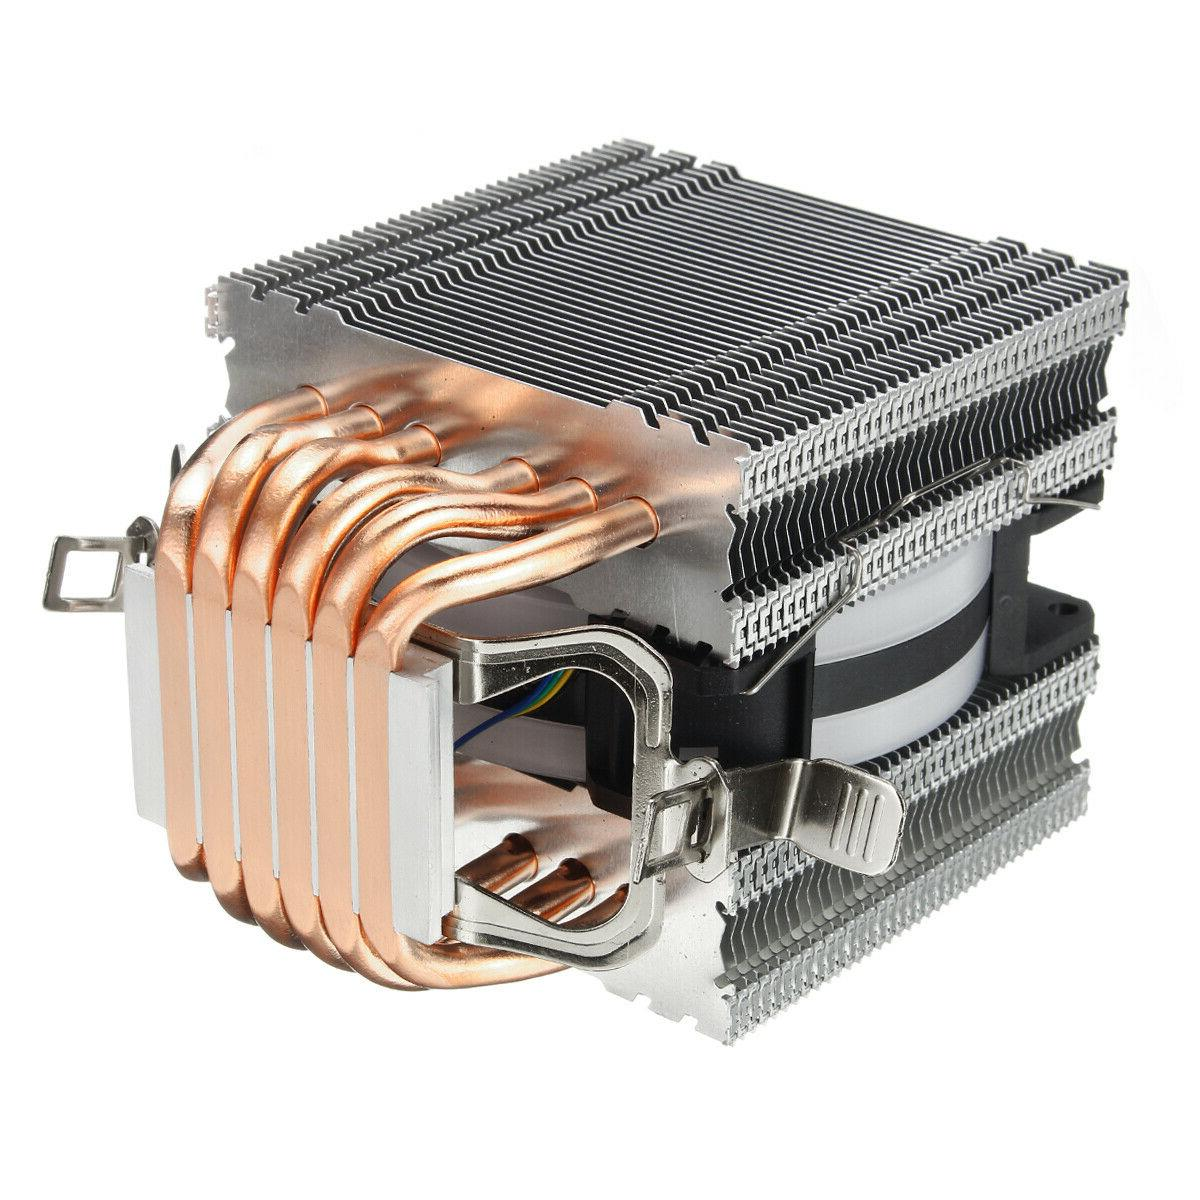 DIY Removable CPU Cooler RGB Cooling Intel 1151 1155 1366